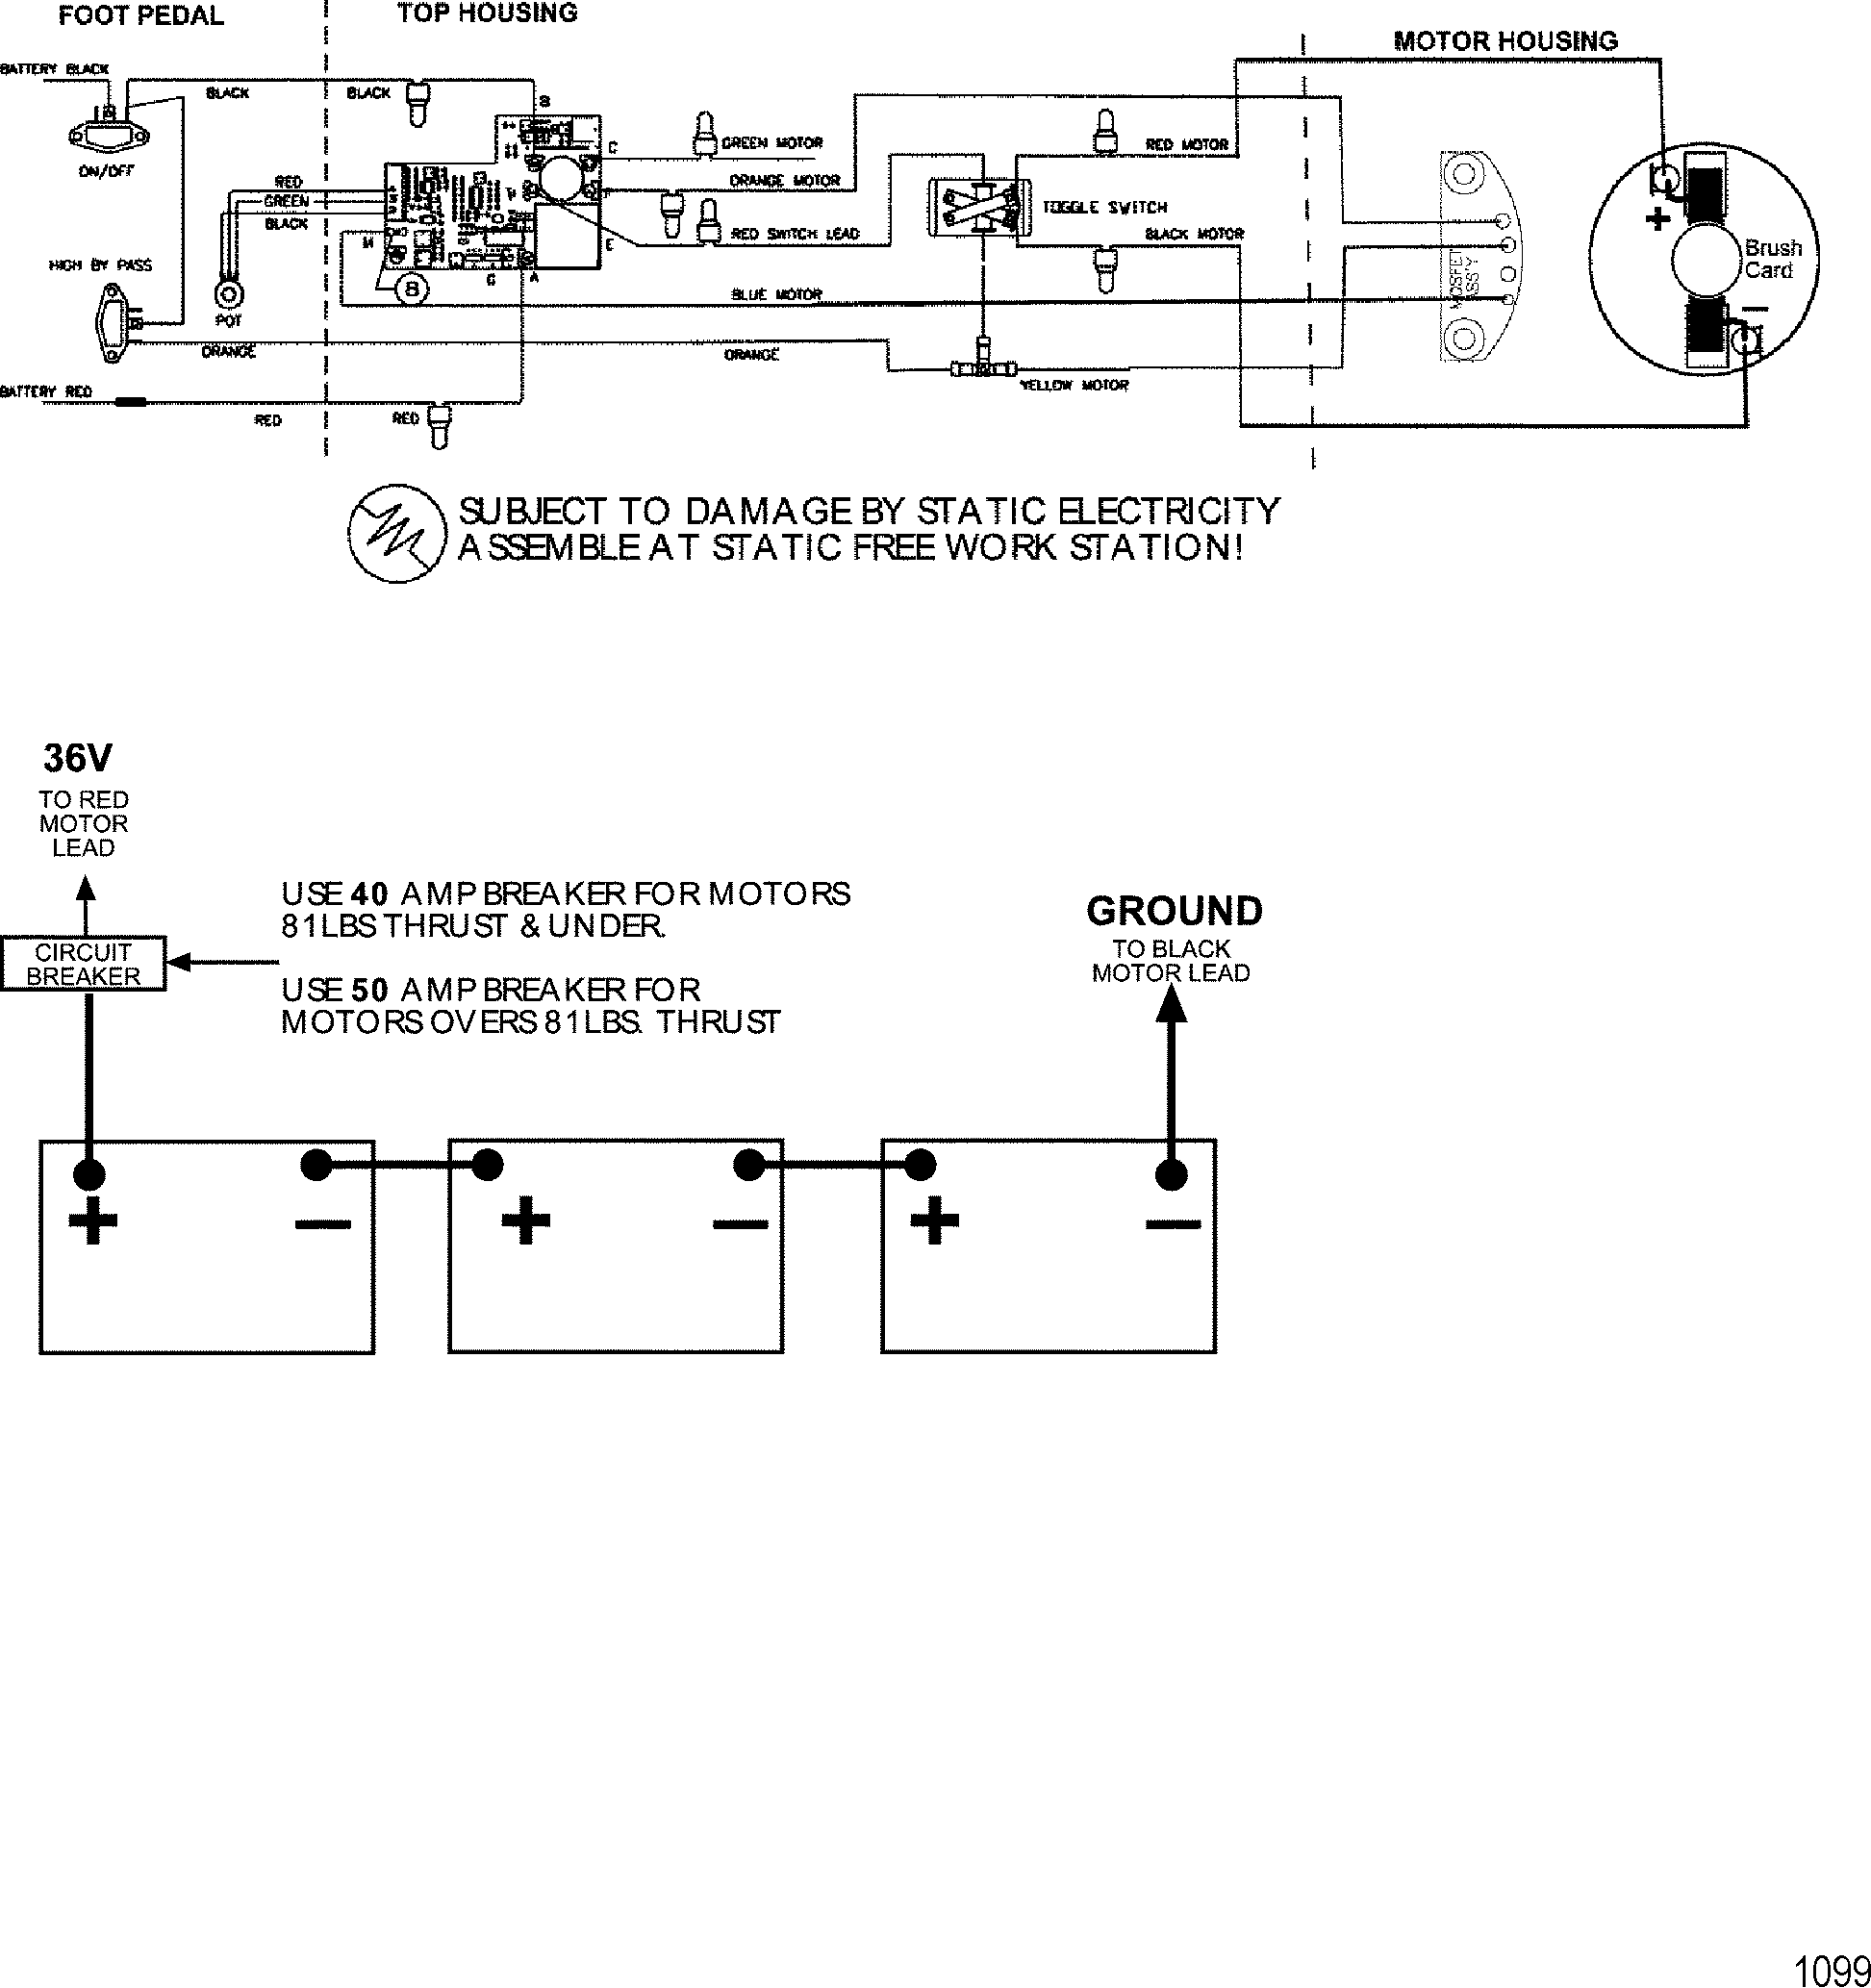 1099 diagrams 600338 motorguide trolling motor wiring diagram motorguide brute 767 wiring diagram at readyjetset.co